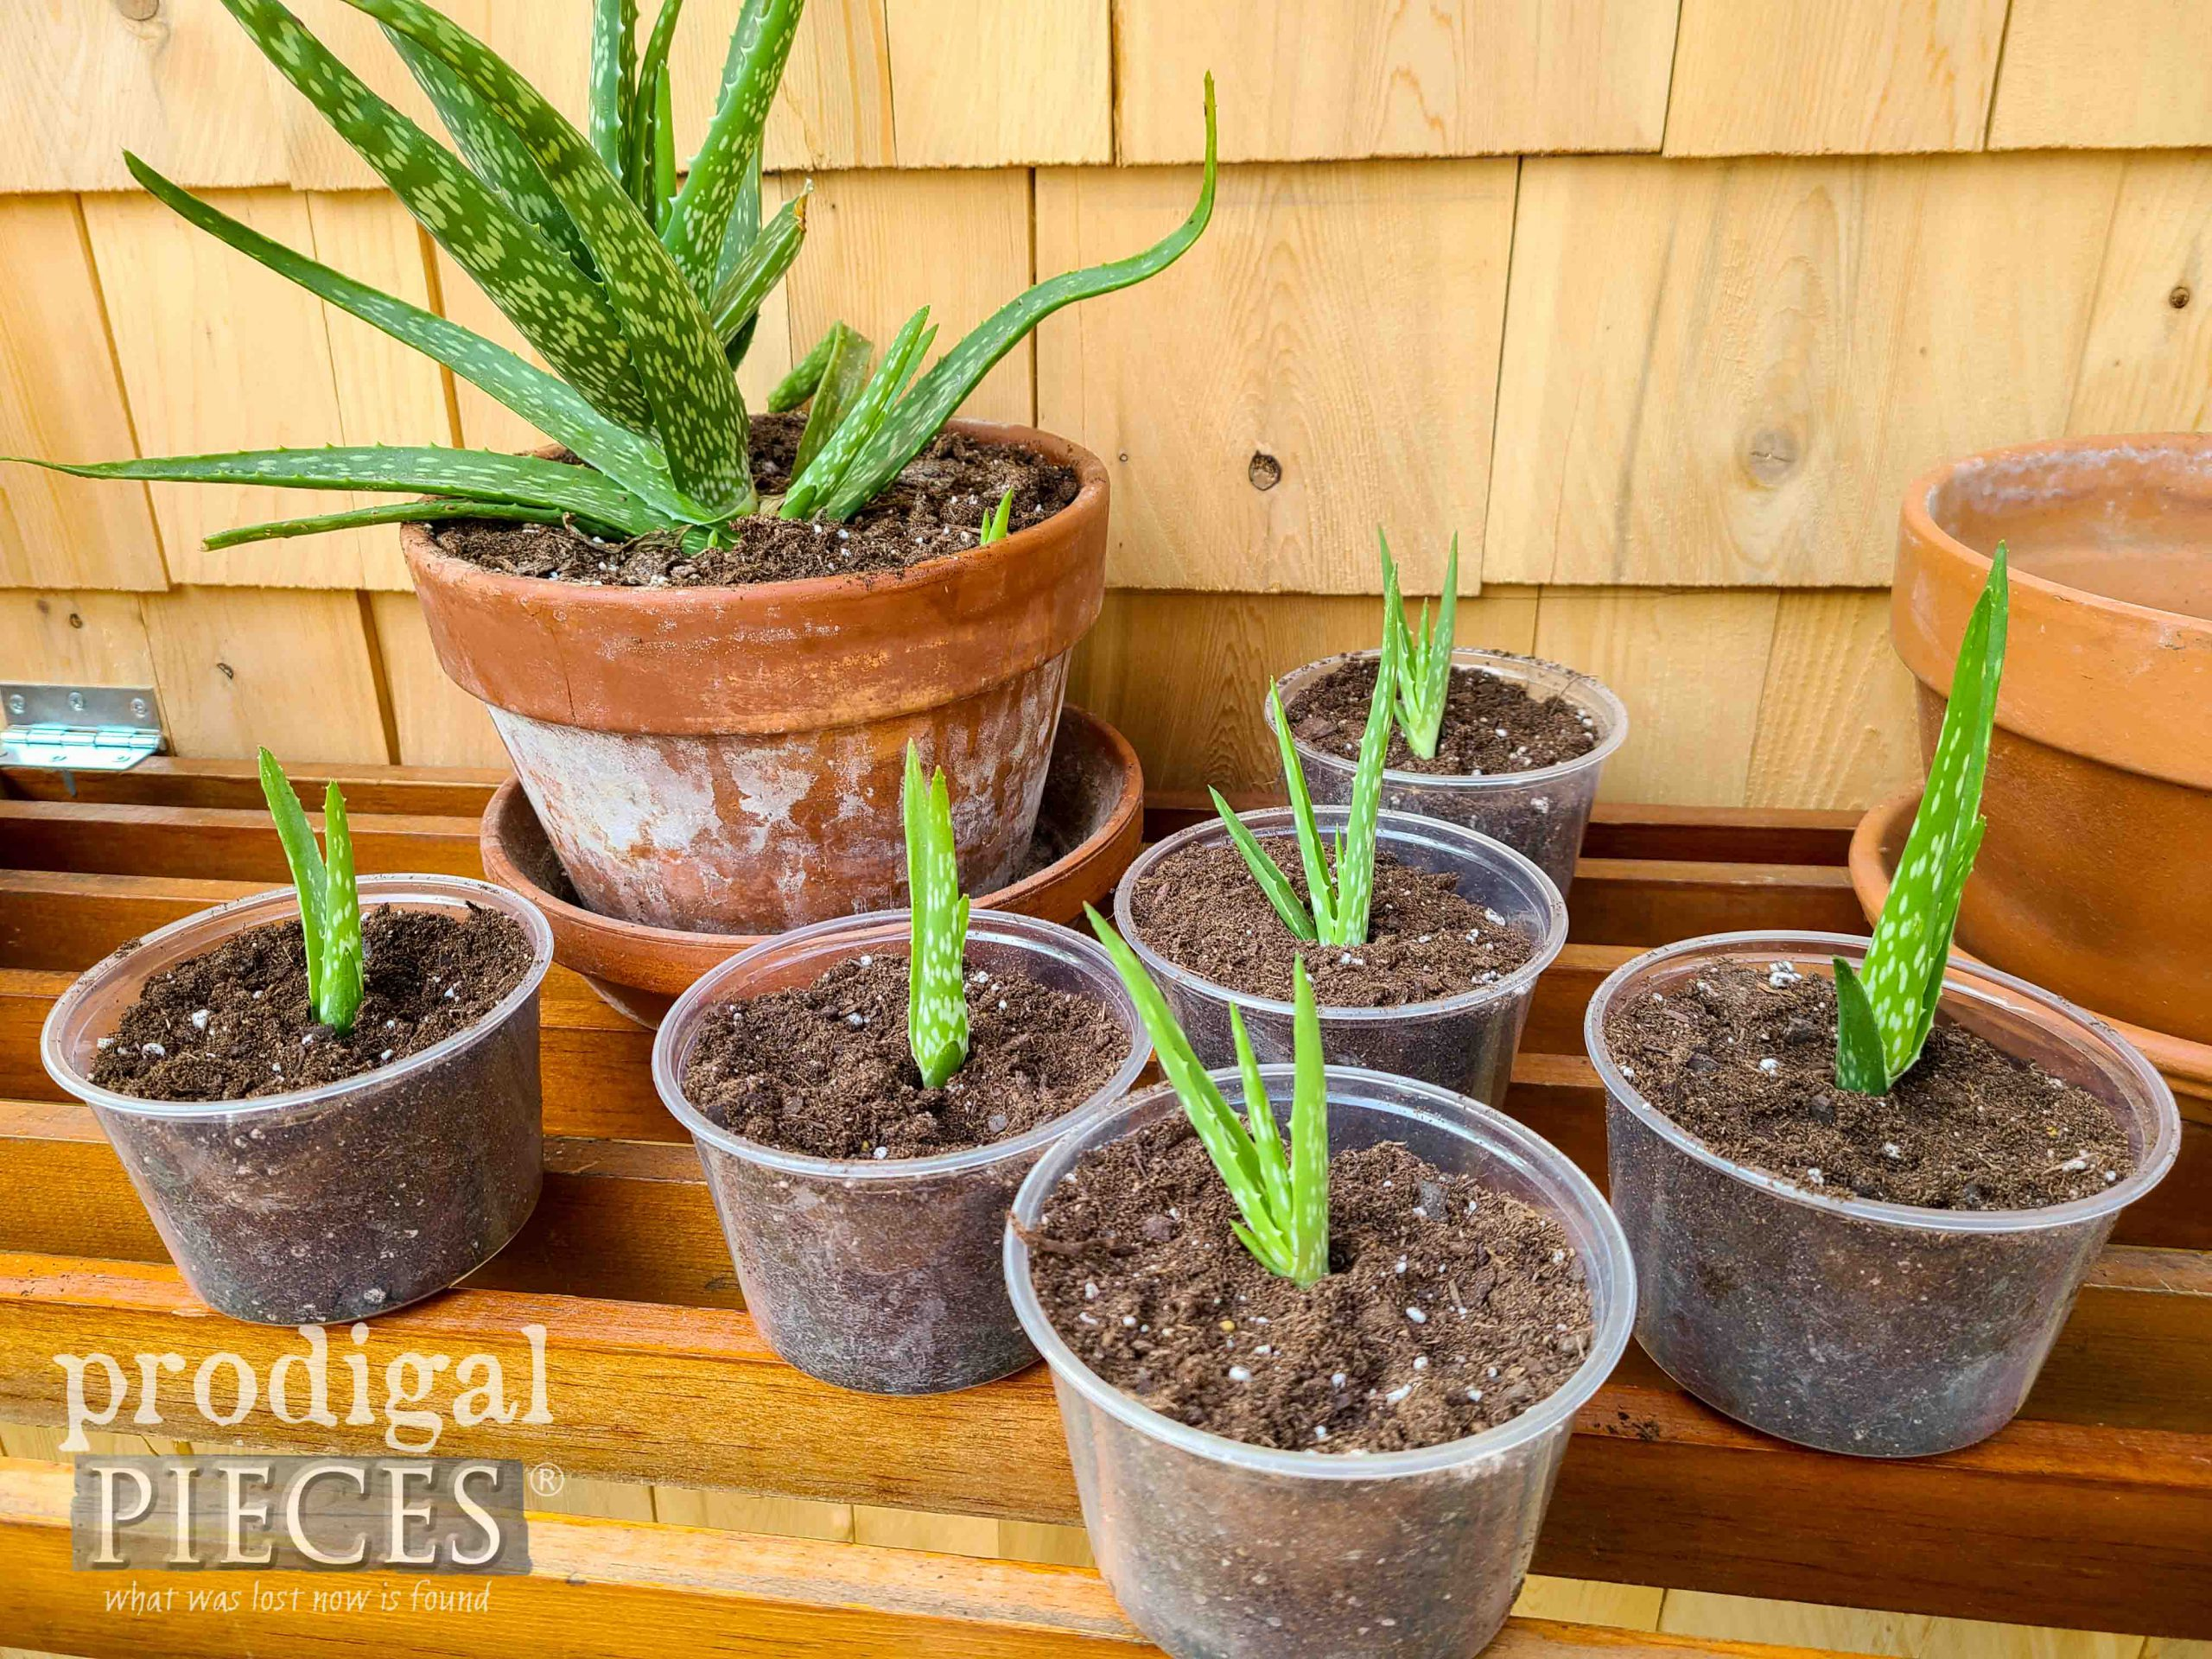 Aloe Starts Re-potted to Share by Larissa of Prodigal Pieces | prodigalpieces.com #prodigalpieces #garden #diy #gardening #succulents